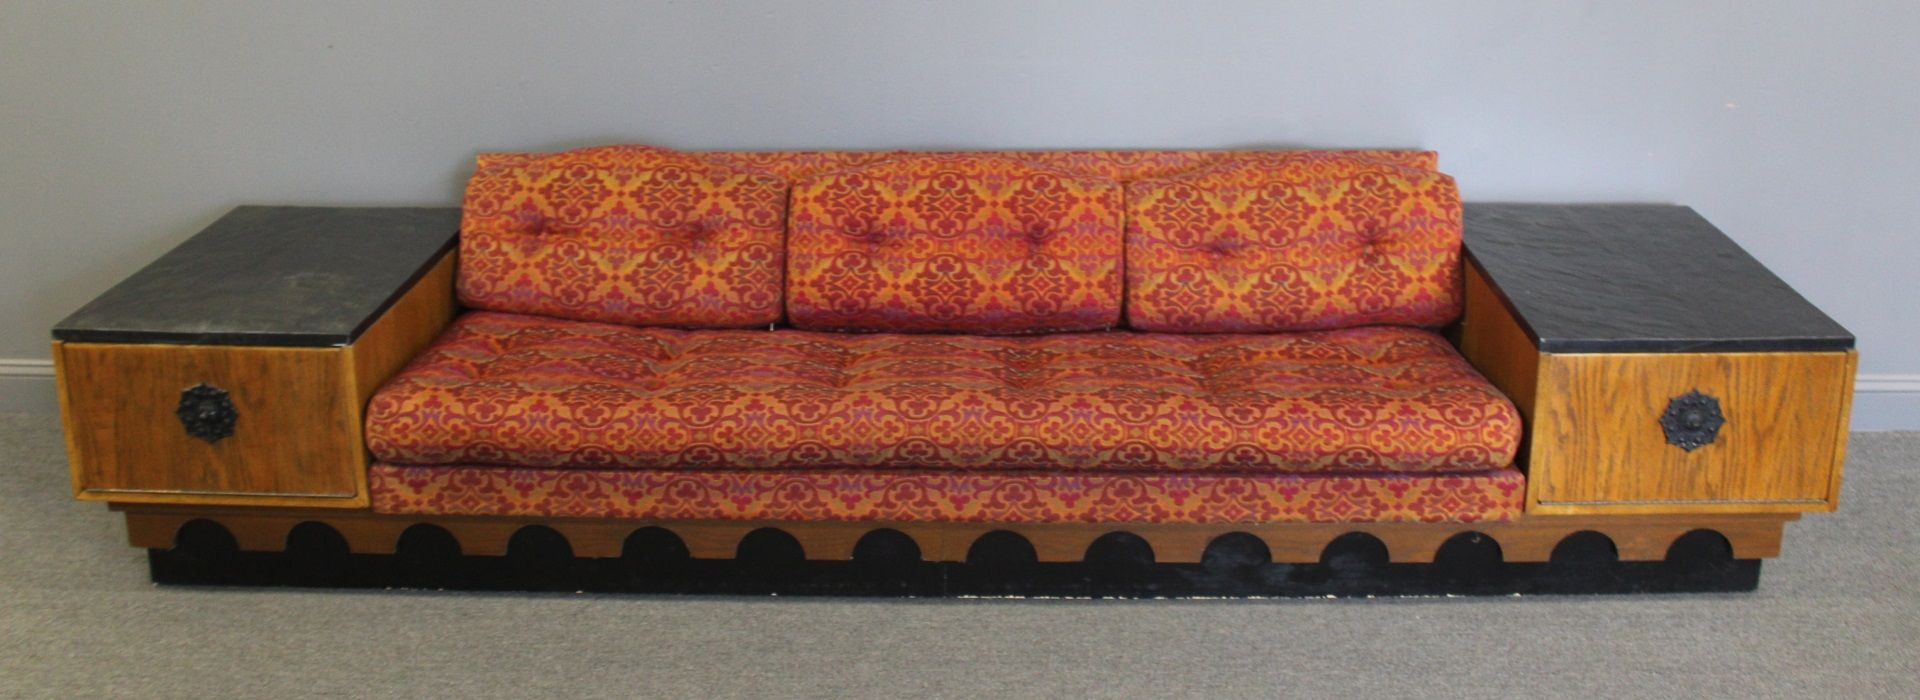 Pearsall Strictly Spanish Sofa